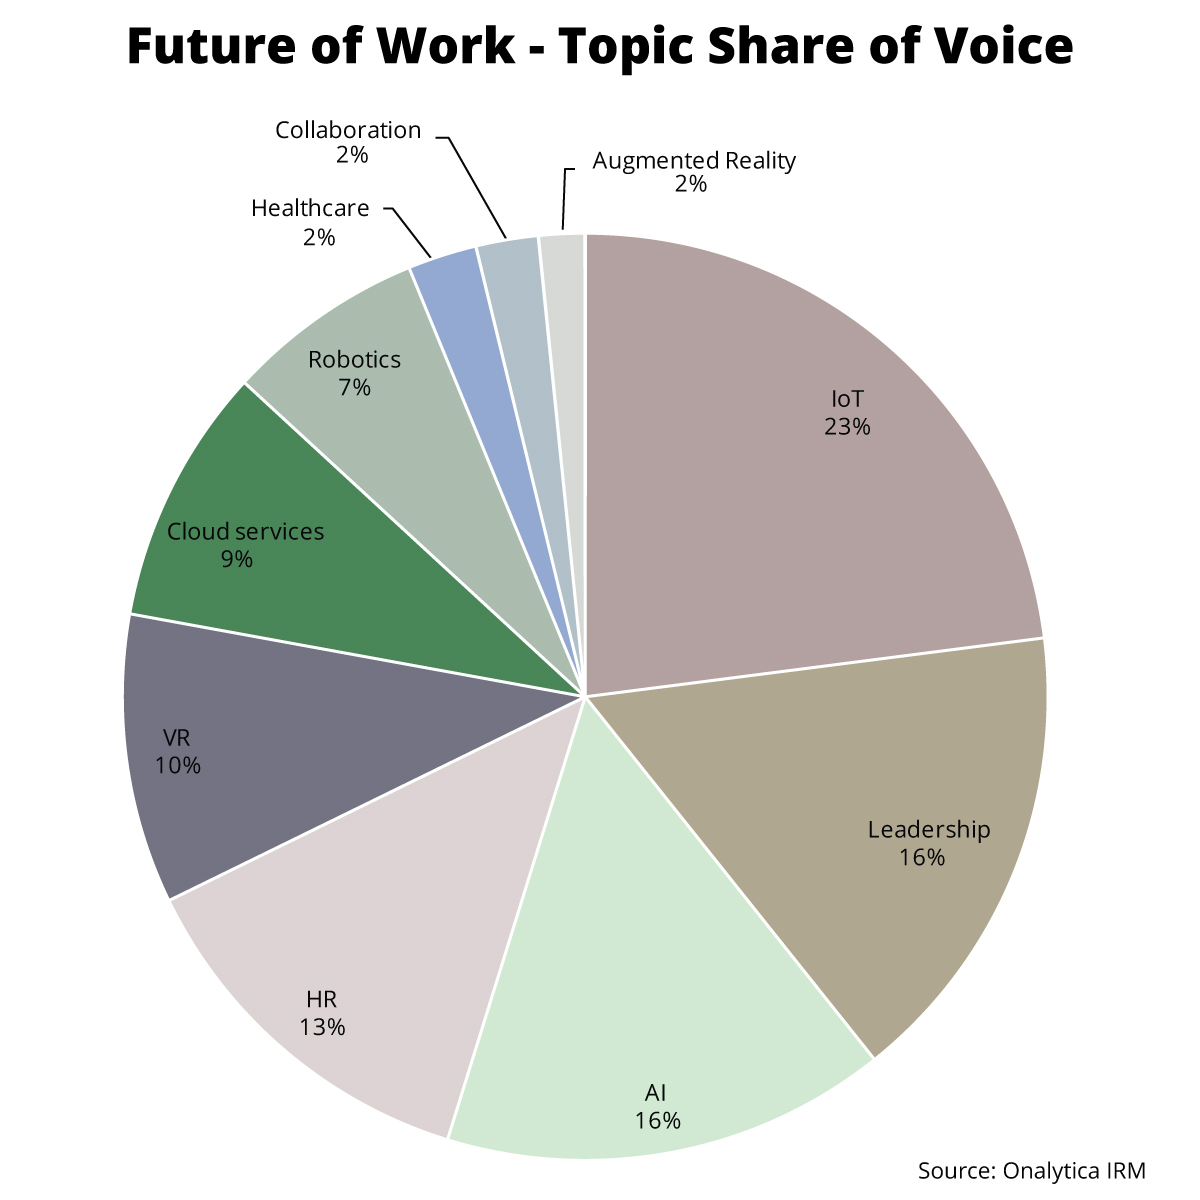 Onalytica - The Future of Work Top 100 Influencers and Brands - Topic Share of Voice